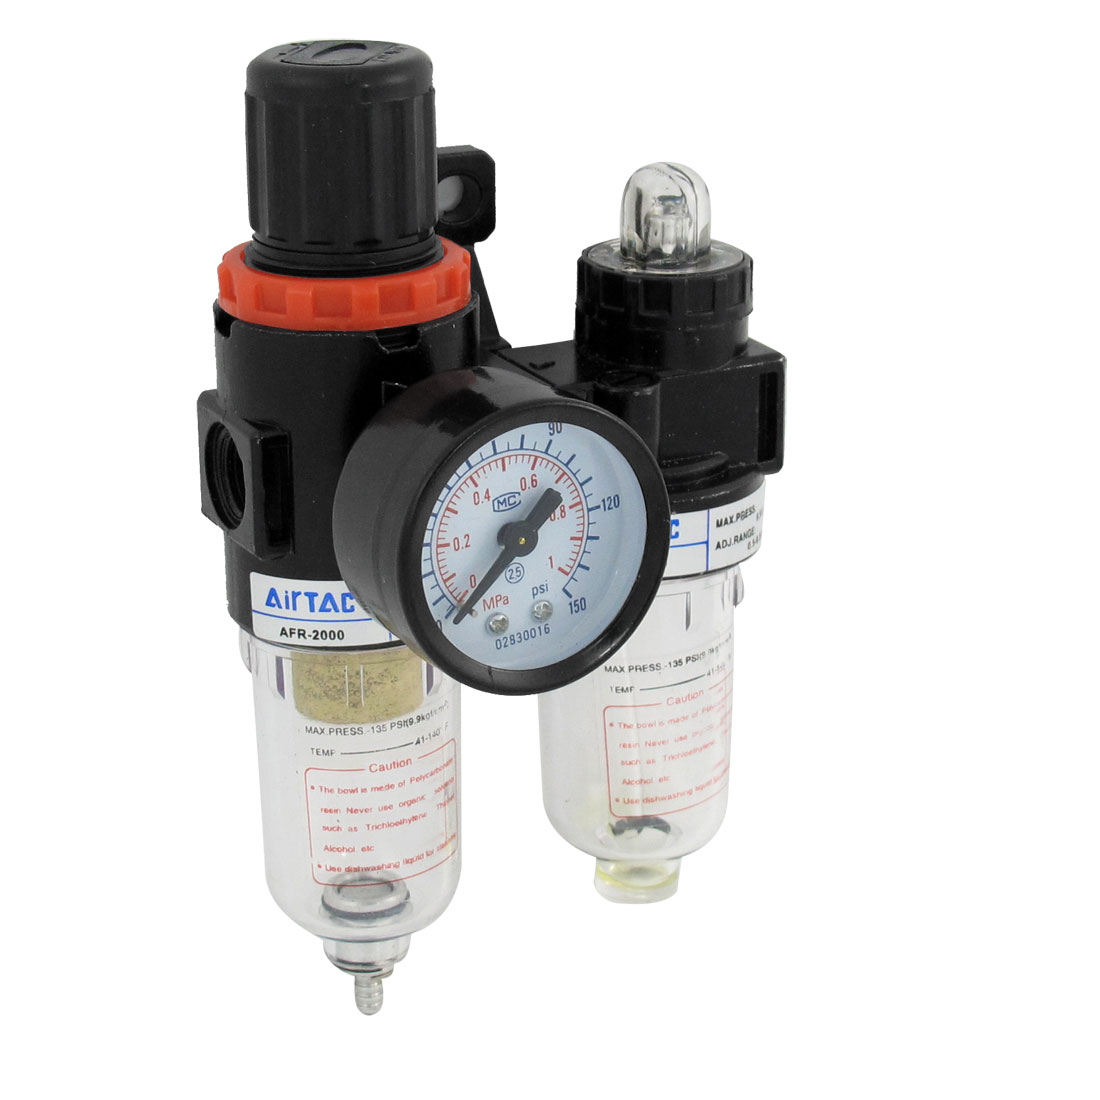 AFC-2000 Pneumatic Air Source Treatment Filter Regulator Lubricator w Pressure Gauge